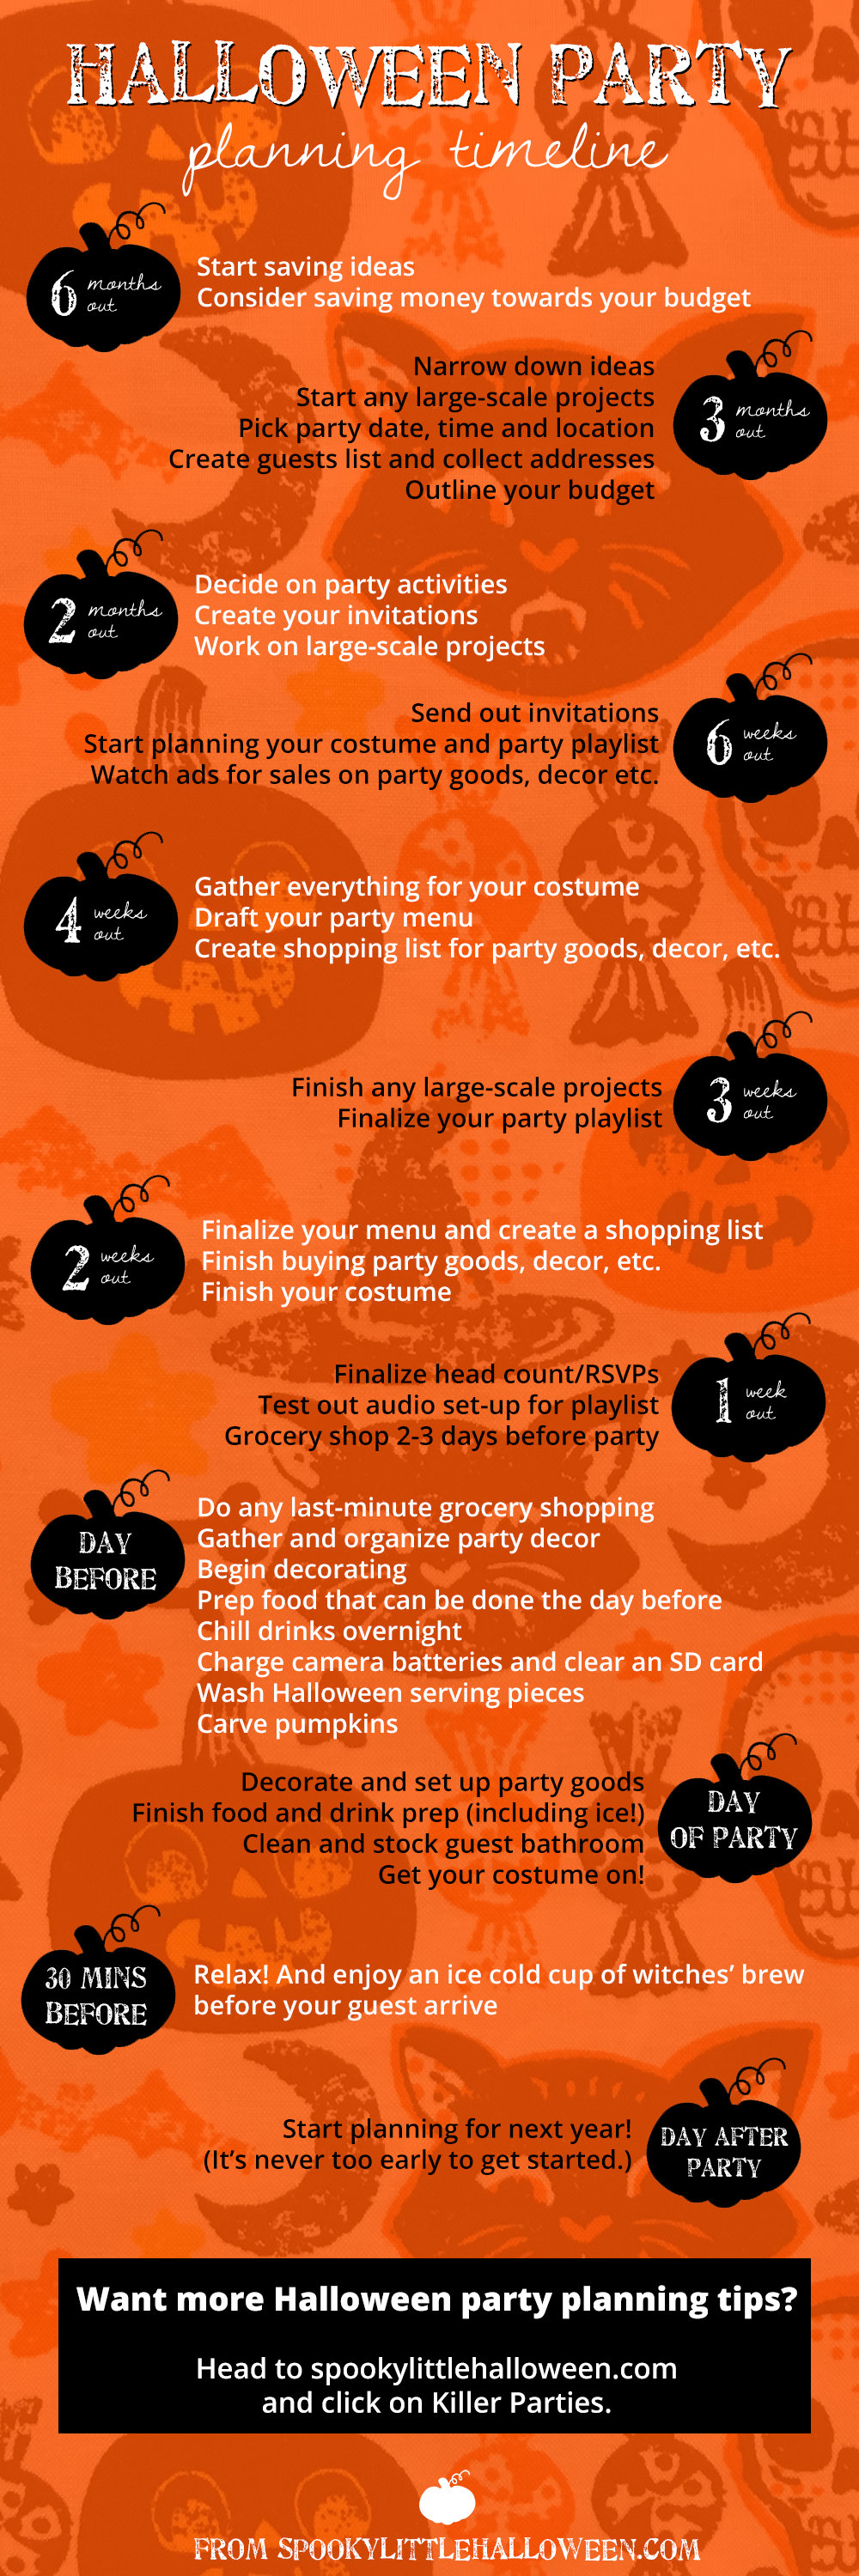 A Halloween Party Planning Timeline So Easy It S Scary Spooky Little Halloween